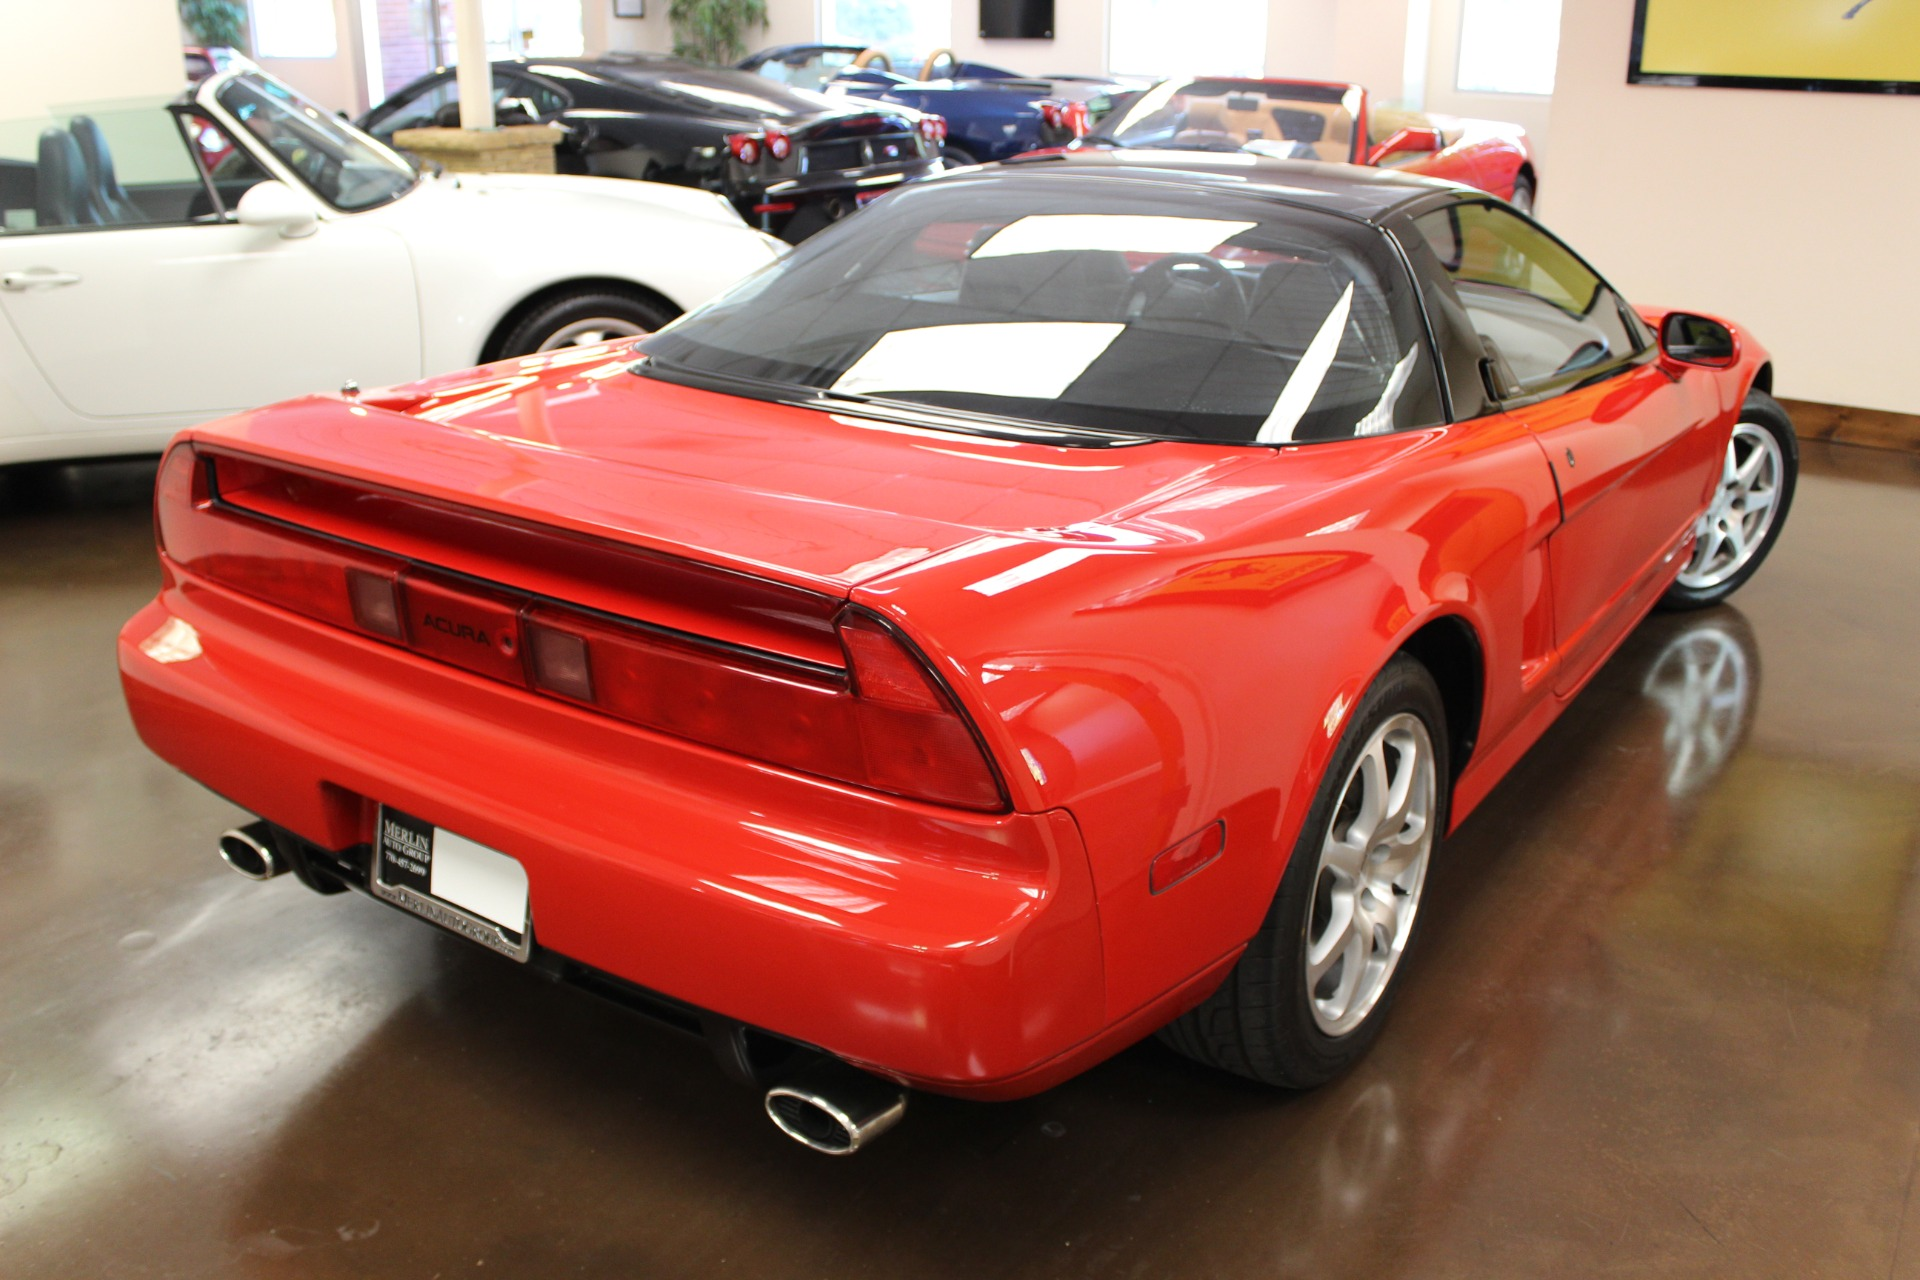 used 1992 acura nsx red coupe v6 3l manual leather all original. Black Bedroom Furniture Sets. Home Design Ideas